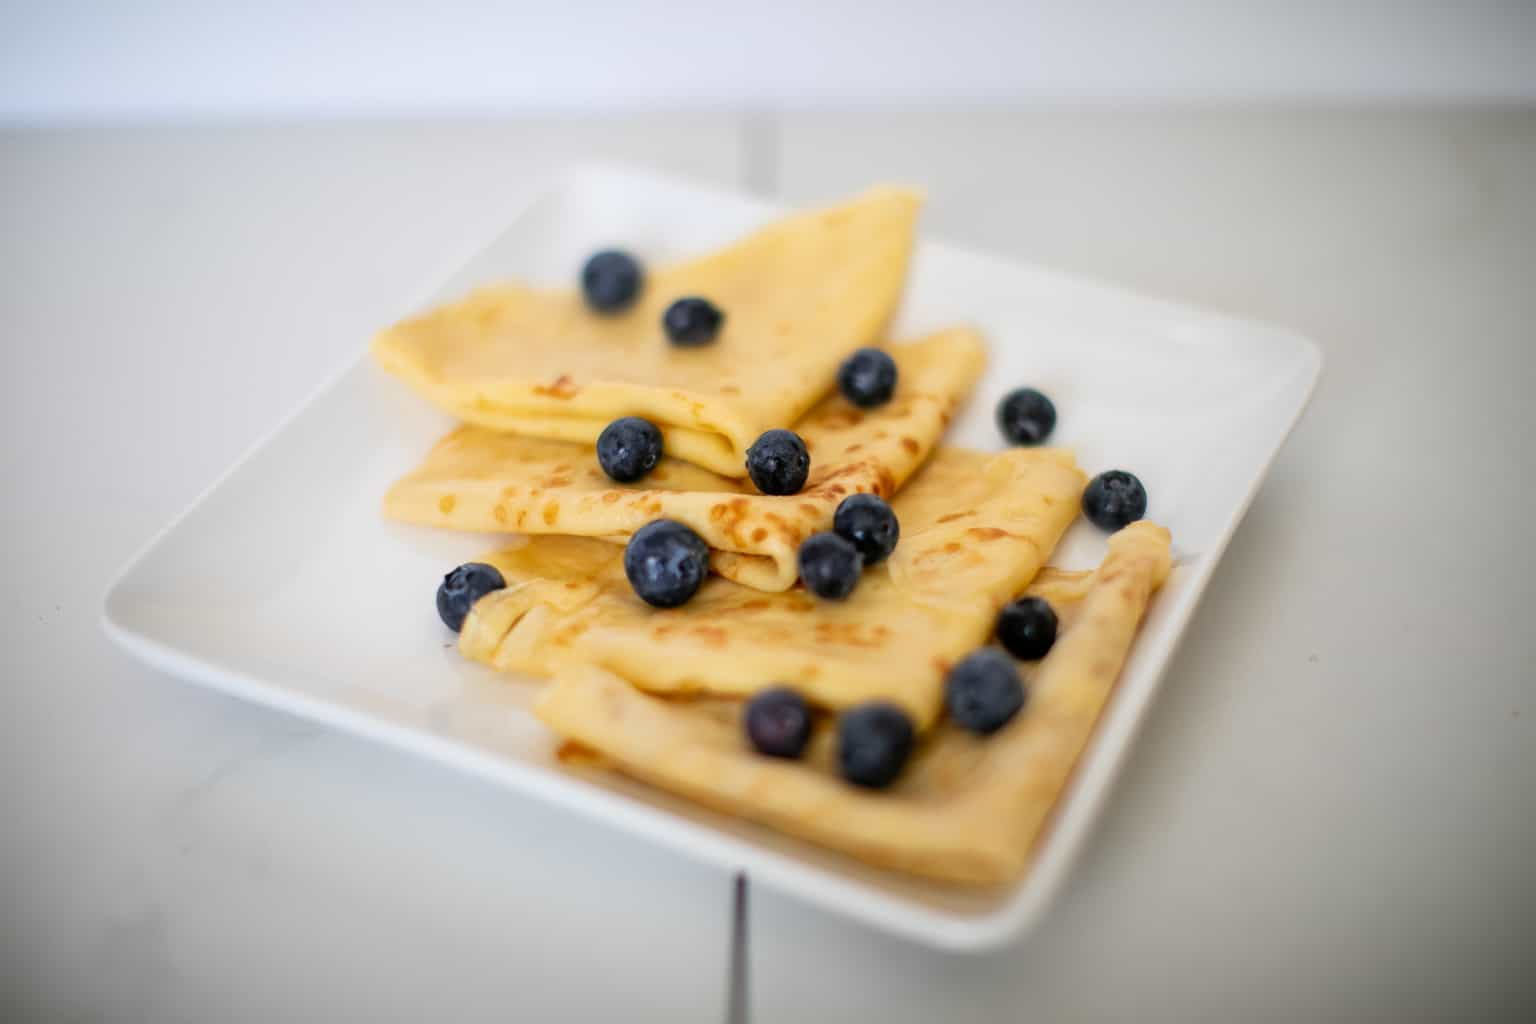 Simple french crepes recipe topped with blueberries on a plate